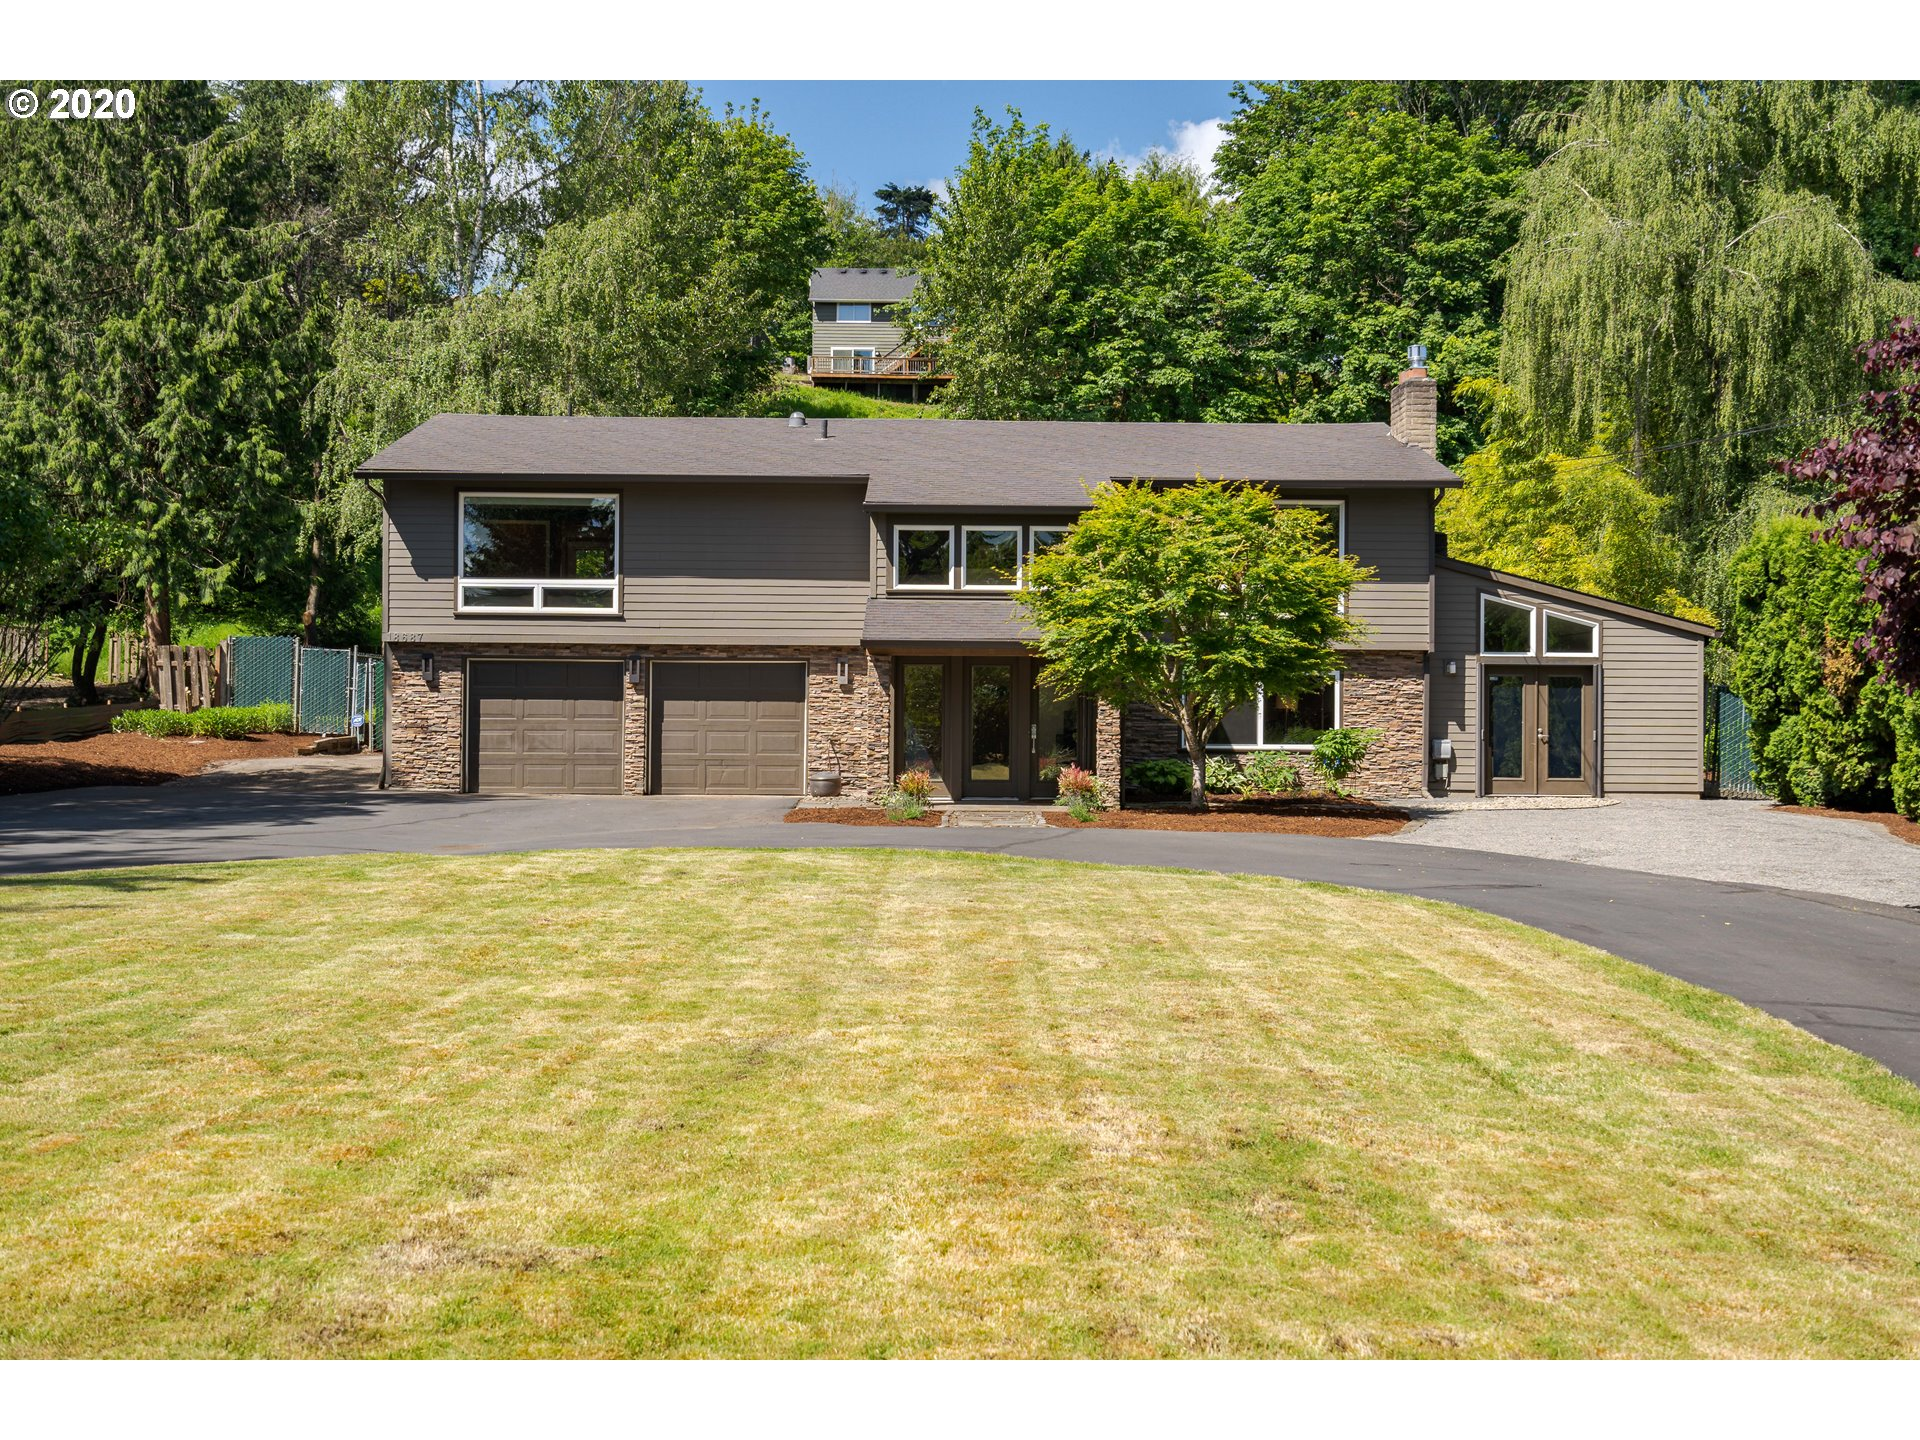 Open This Sat and Sun 12-2pm. Please be prepared with masks, 1 party through at a time. Pull up to this peaceful, .51 acre home, across the street from the Willamette River! Enjoy the Entertainers Kitchen: Gas, S/S appliances & Open Family Room. The Master Suite has deck access, heated floors. Perfect studio for work from home w/dbl. french doors. Plenty of Boat/RV parking & so many upgrades! Appt Only